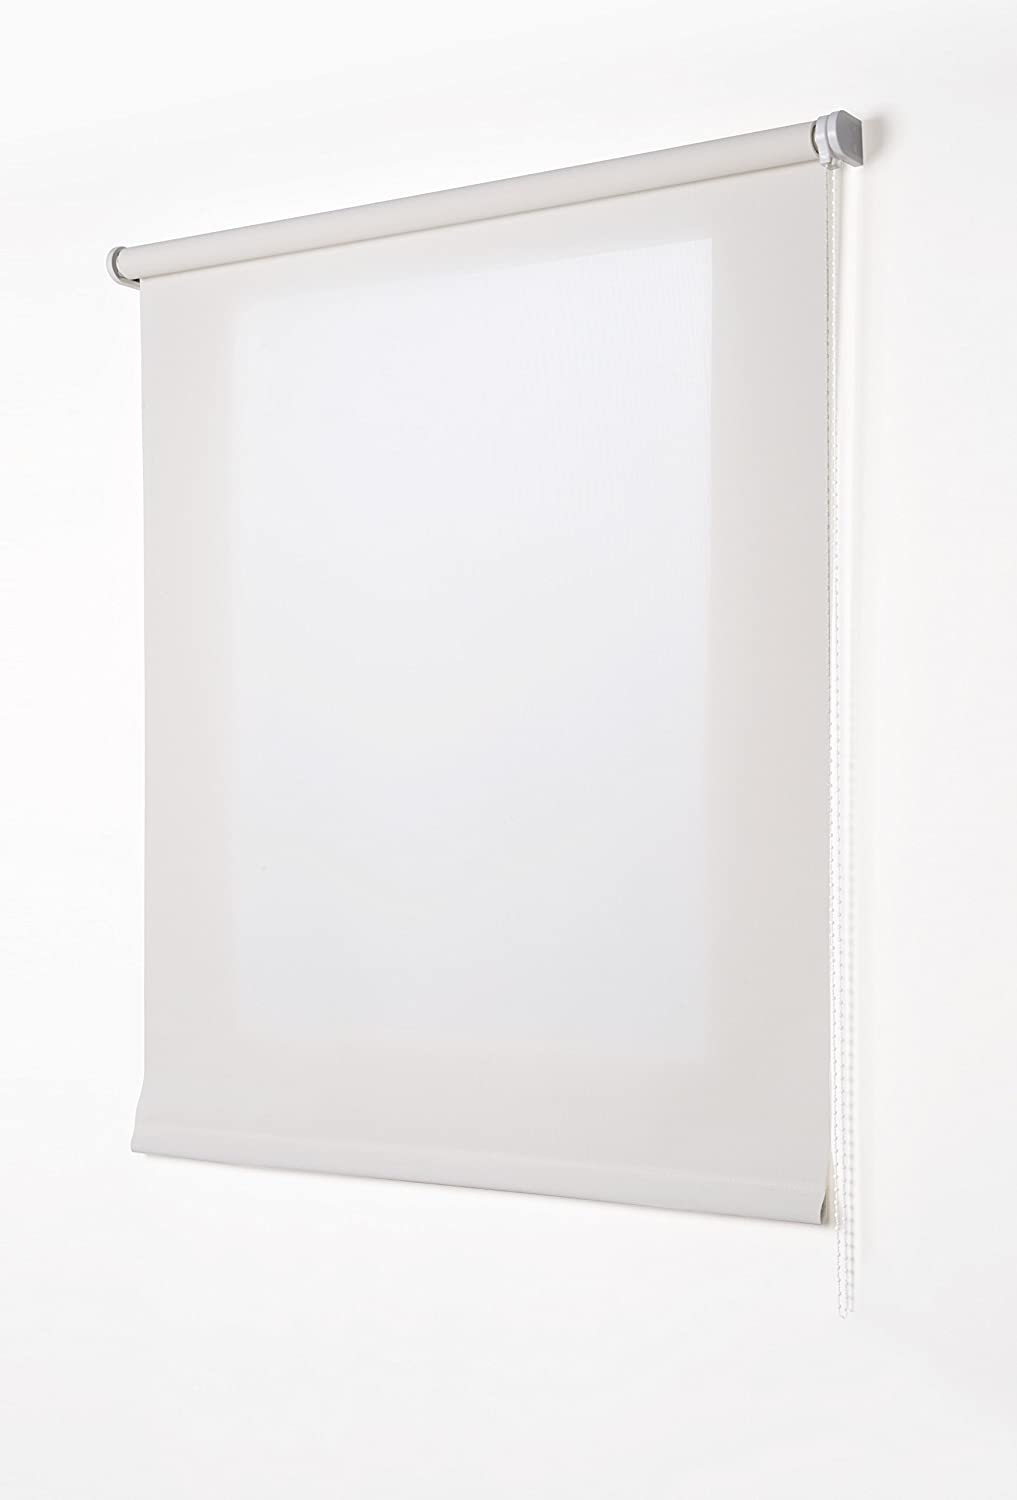 Estores Basic, Stores screen, Blanco, 120x250cm, estores plegable, persianas enrollables para el interior.: Amazon.es: Hogar